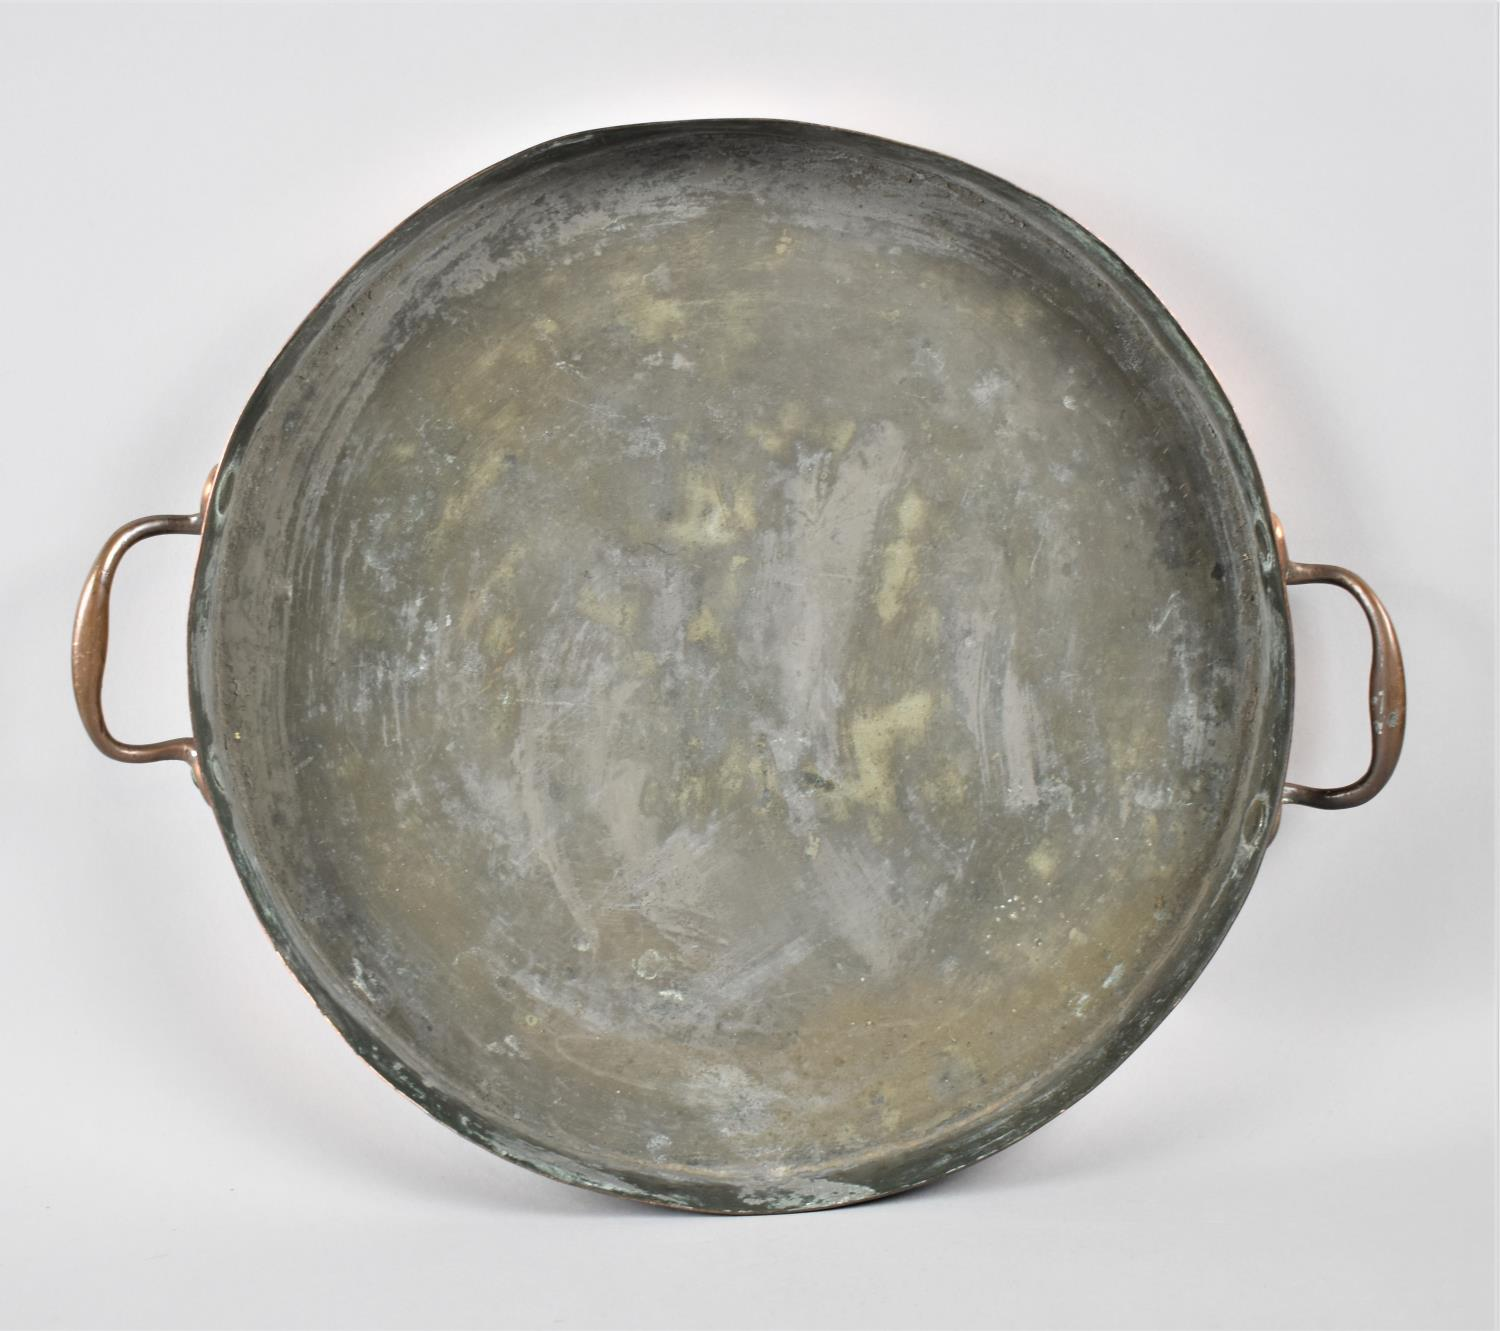 A Victorian Copper Saucepan Lid with Two Handles, 35.5cm Diameter - Image 3 of 3